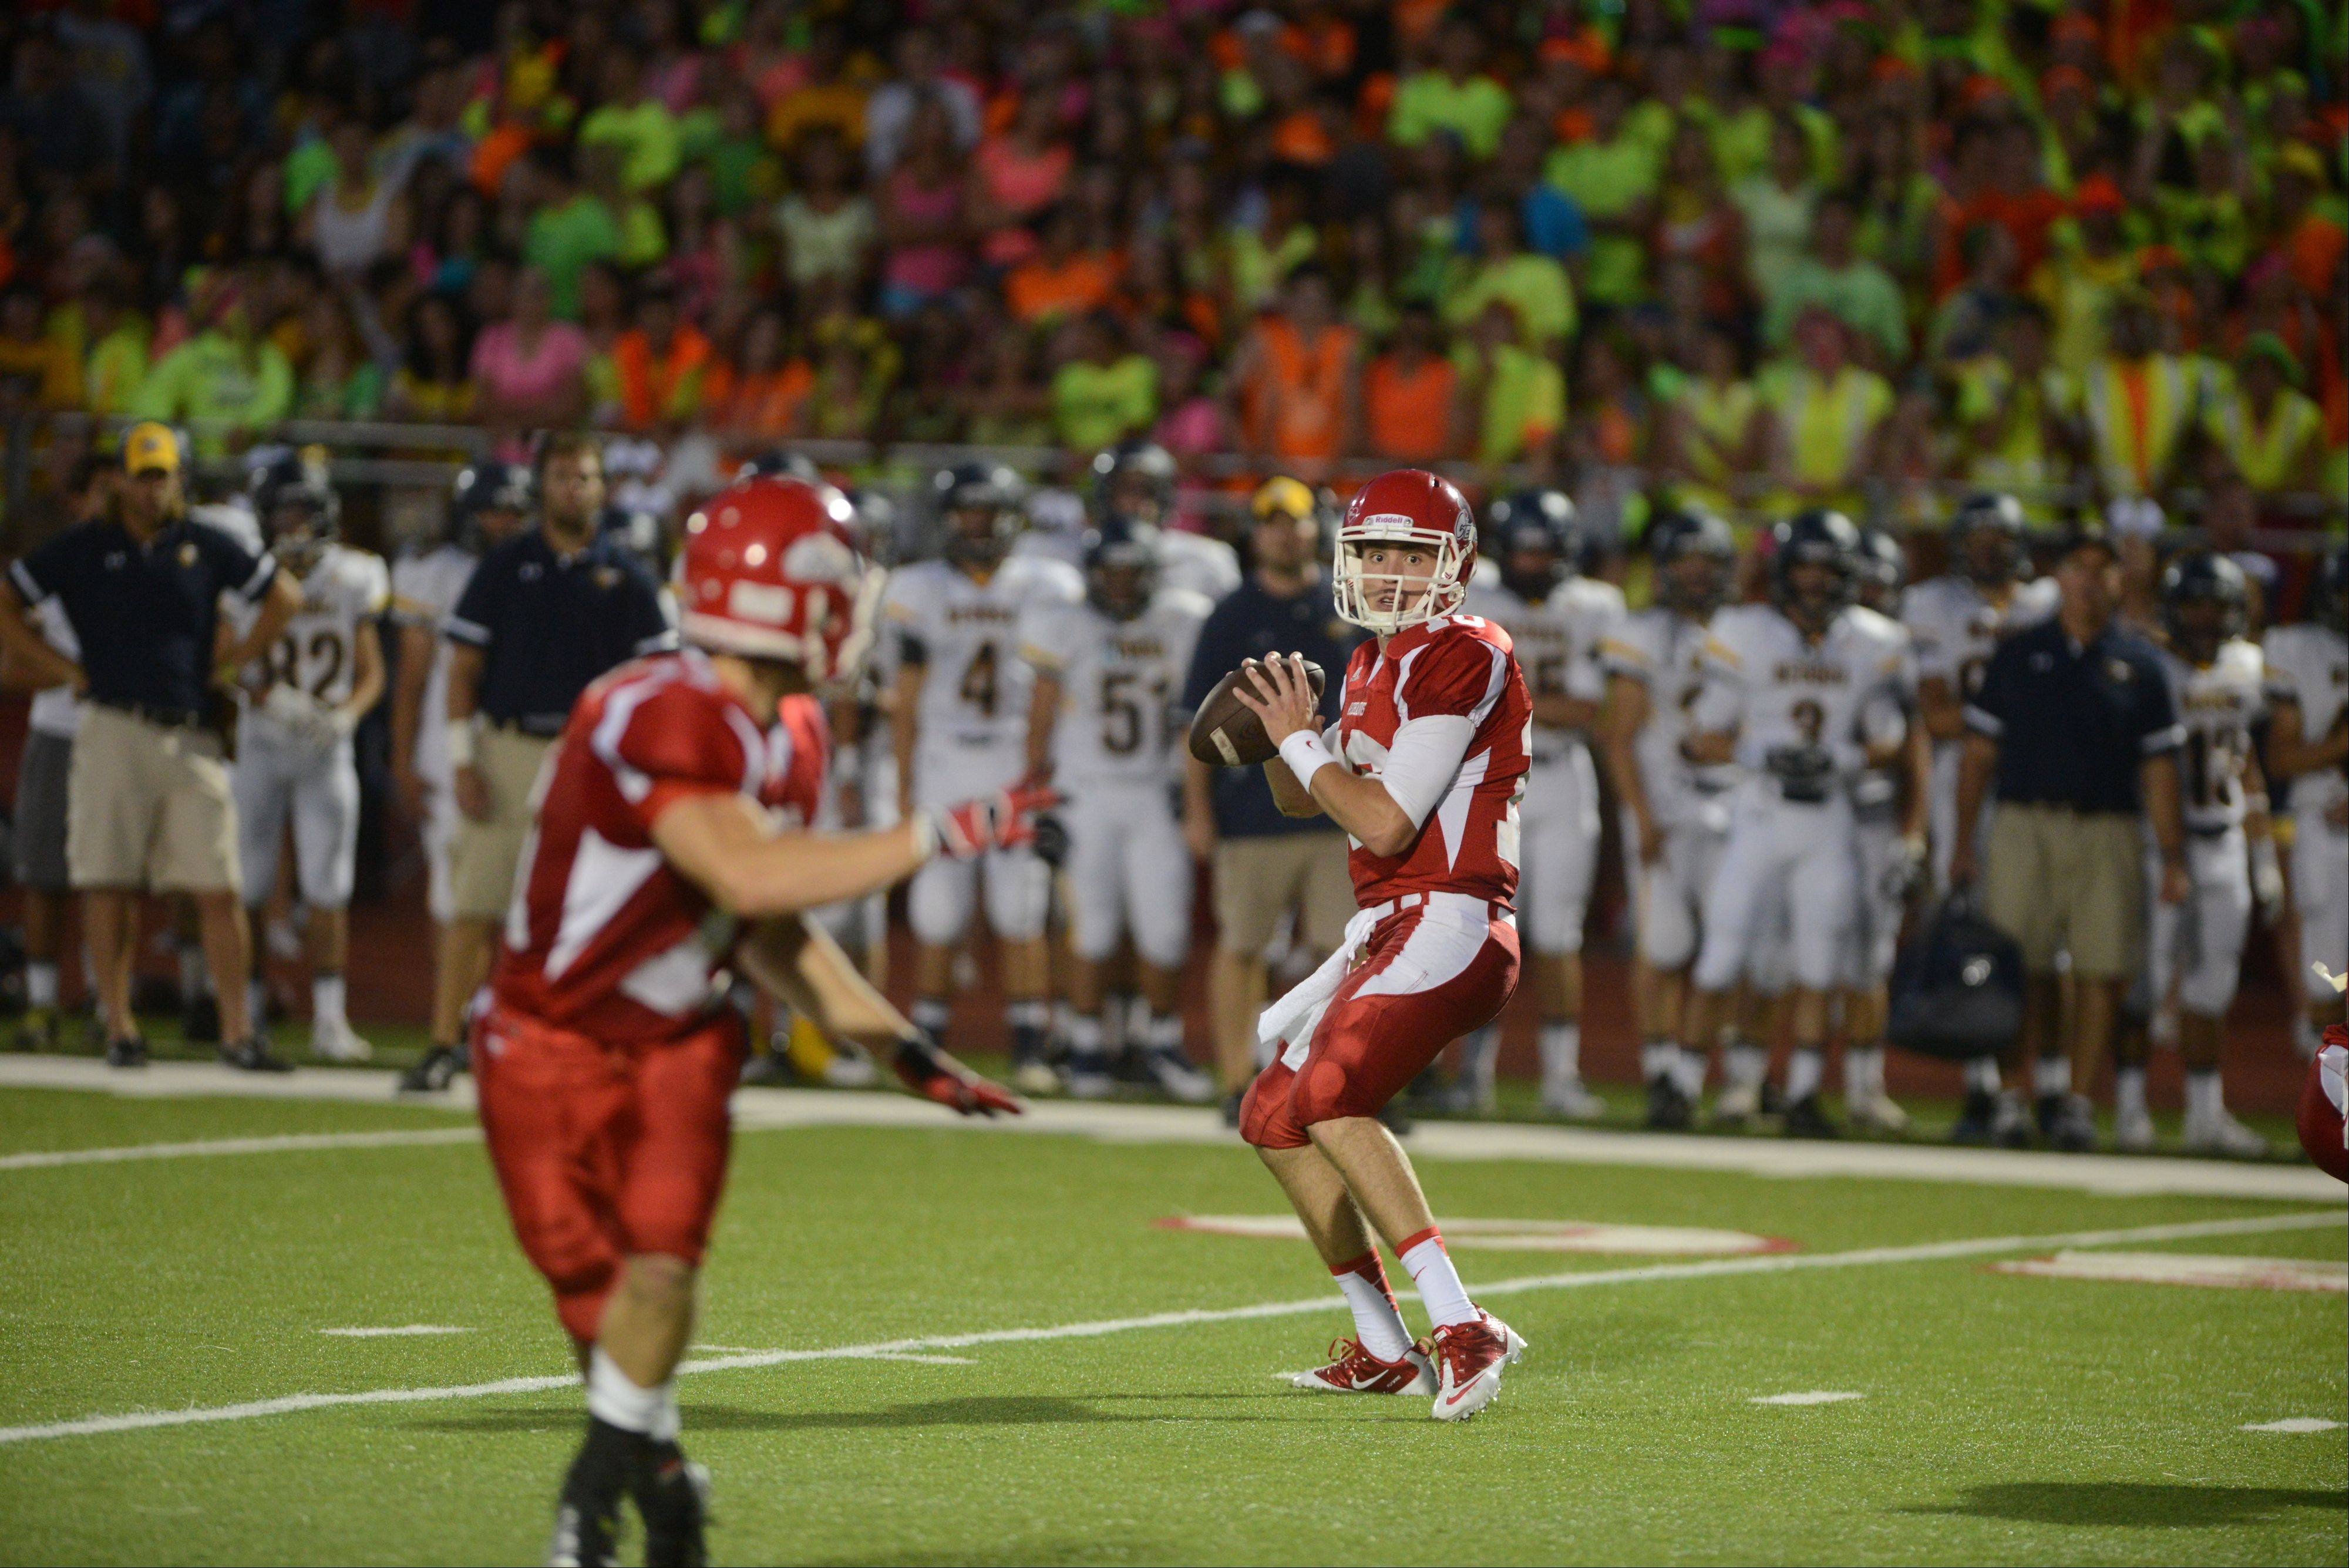 Week-2- Photos from the Neuqua Valley at Naperville Central football game on Friday, Sept. 6.